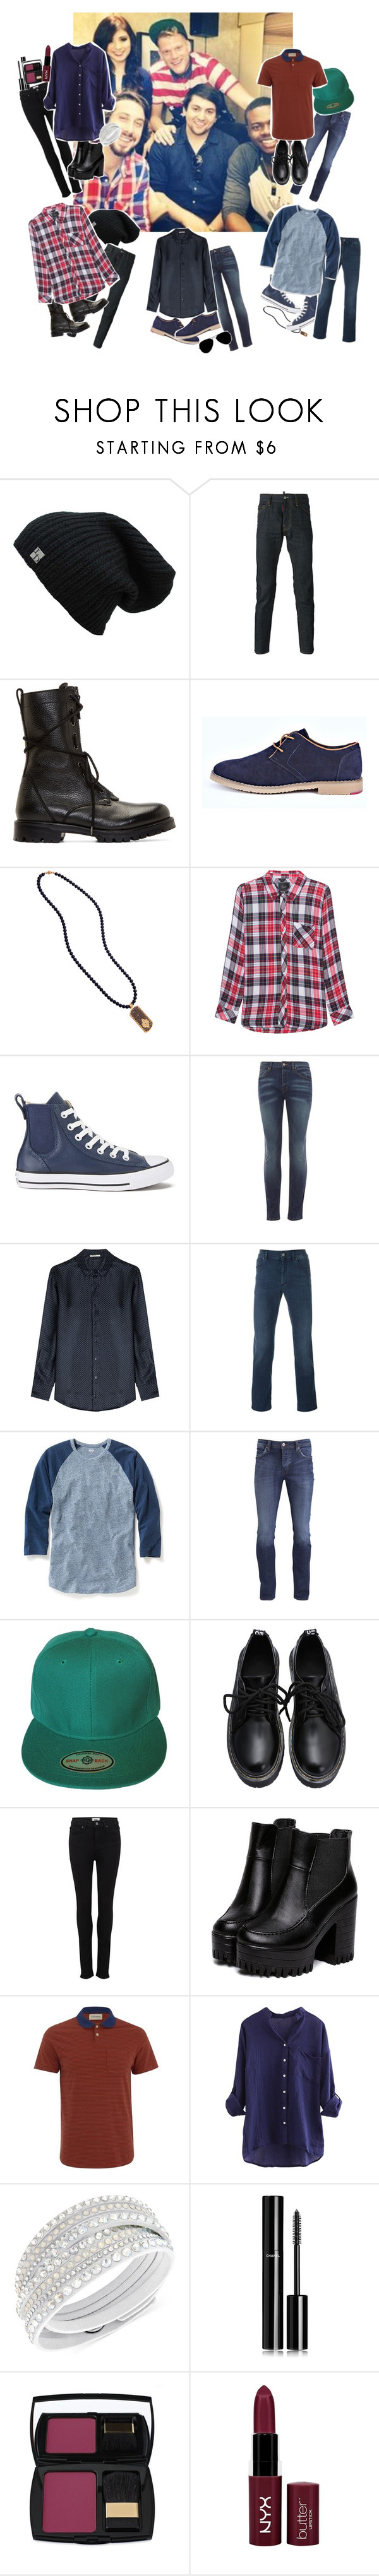 """""""11.pentatonix is my life :*"""" by be-happy-now ❤ liked on Polyvore featuring Dsquared2, Helmut Lang, Boohoo, Rails, Converse, HUGO, AG Adriano Goldschmied, Versace, Old Navy and Neuw"""